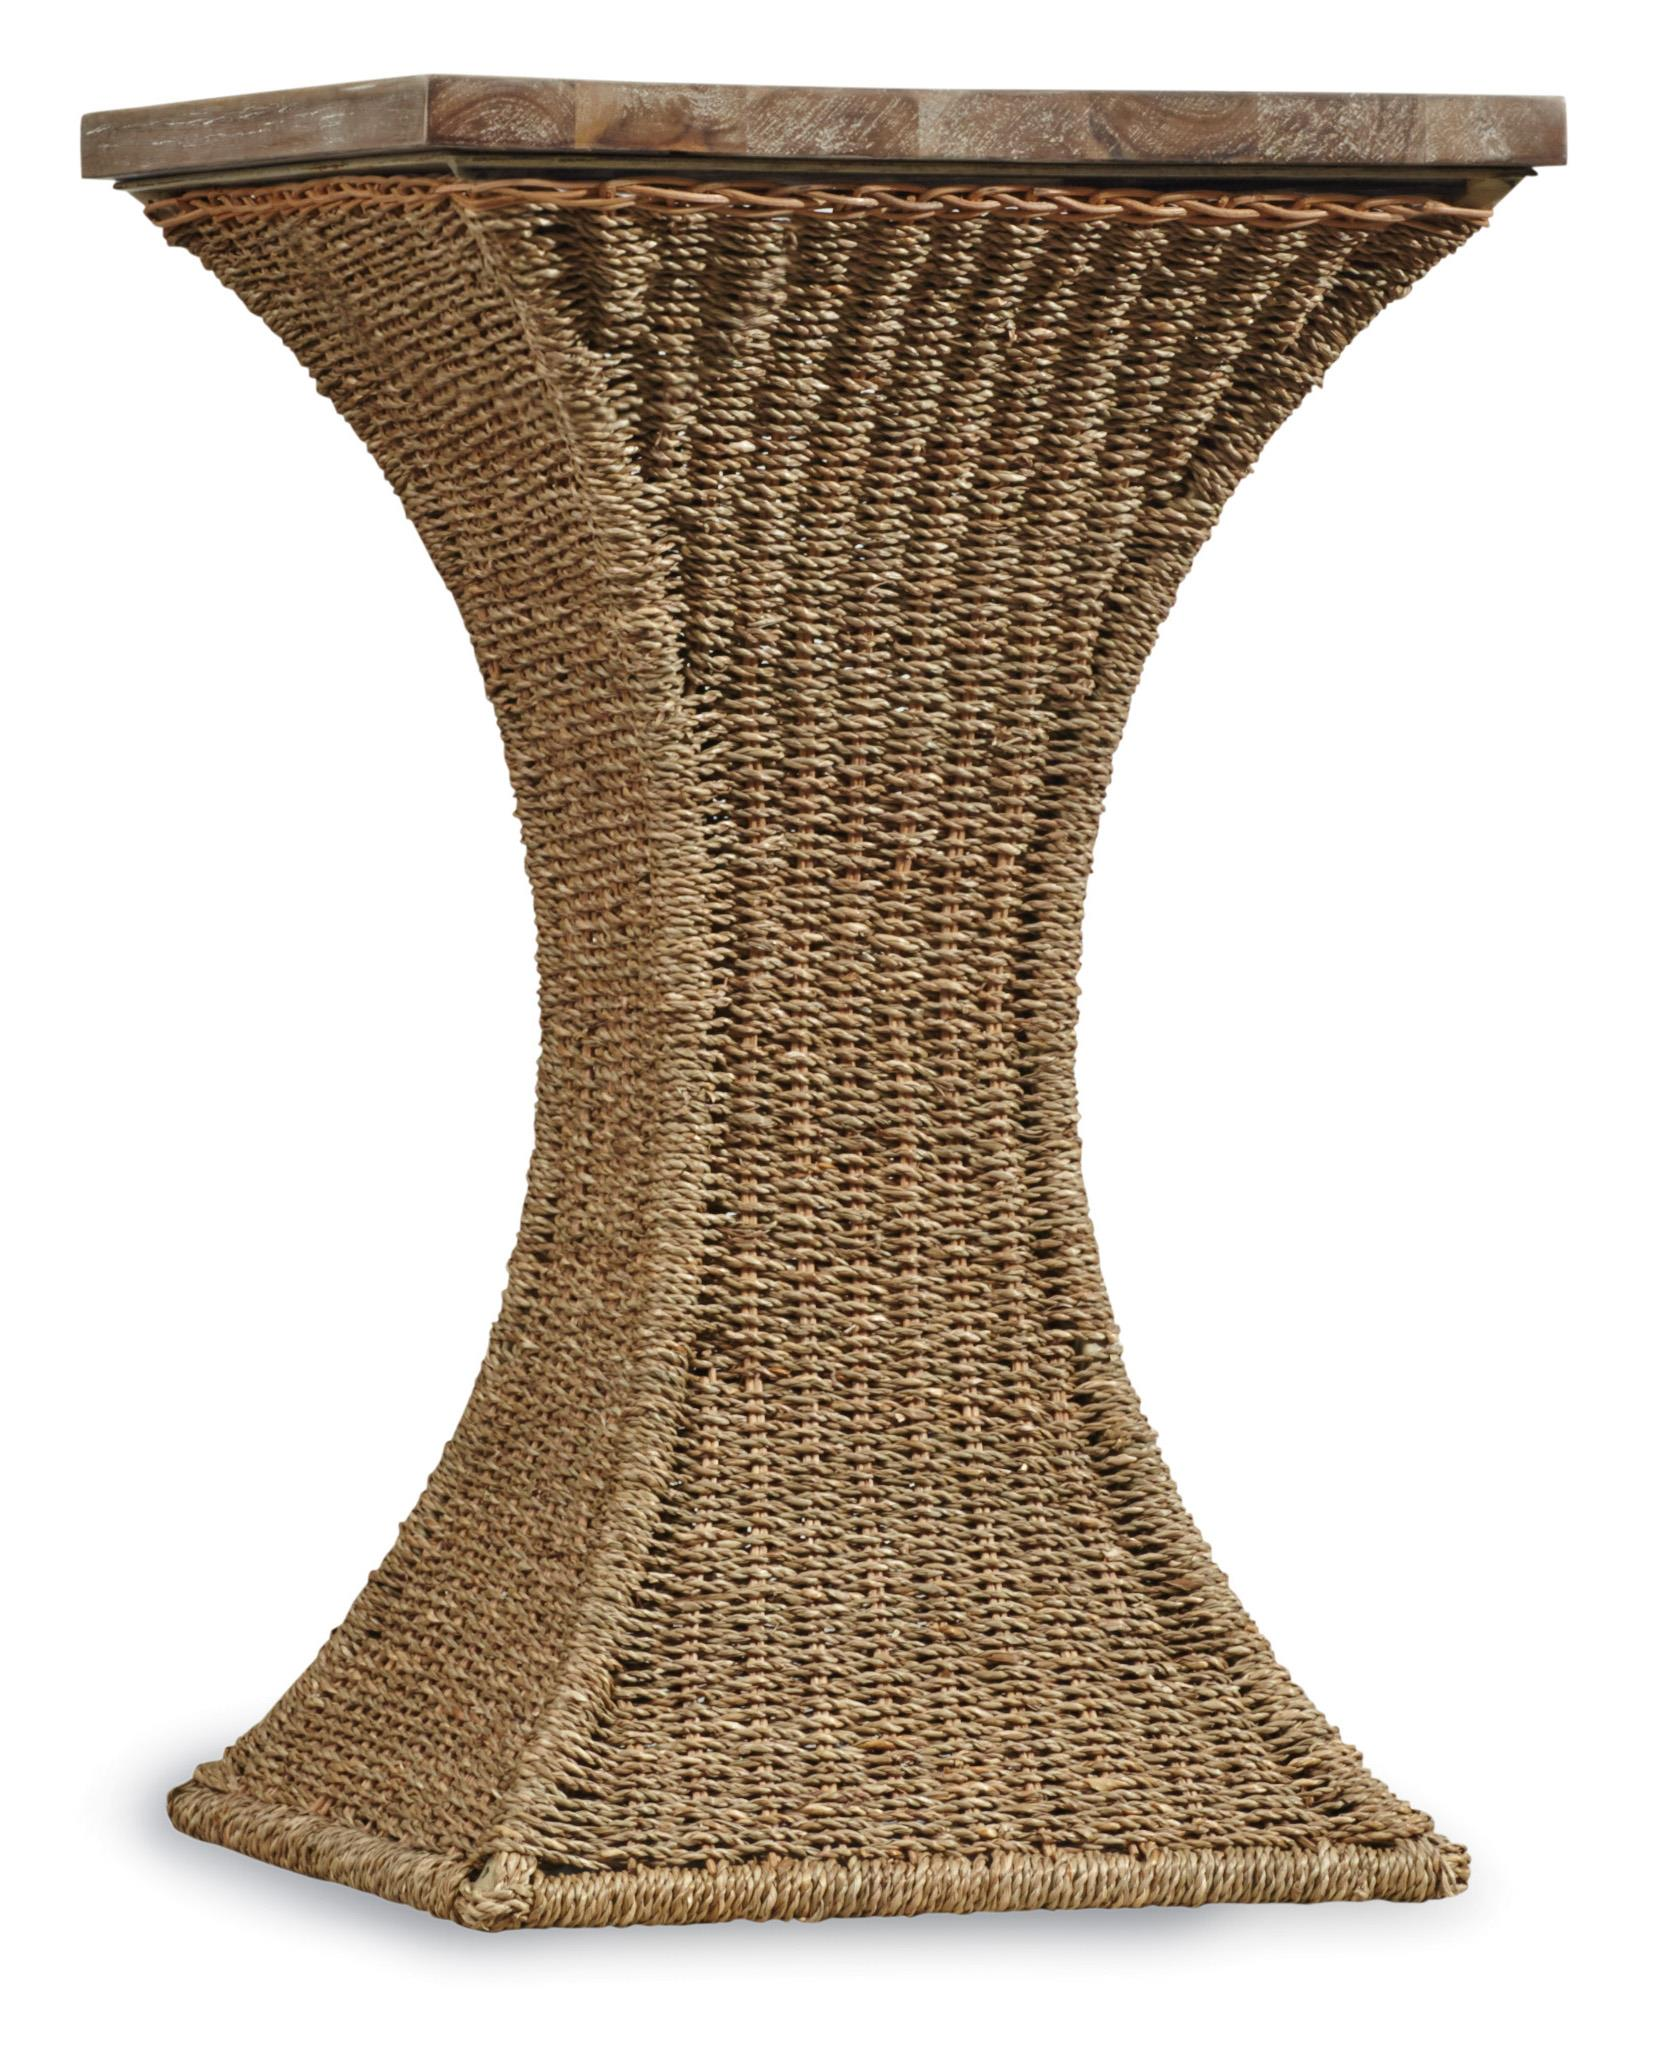 Hooker Furniture Studio 7H Go-Anywhere Rope Accent Table - Item Number: 5382-50001